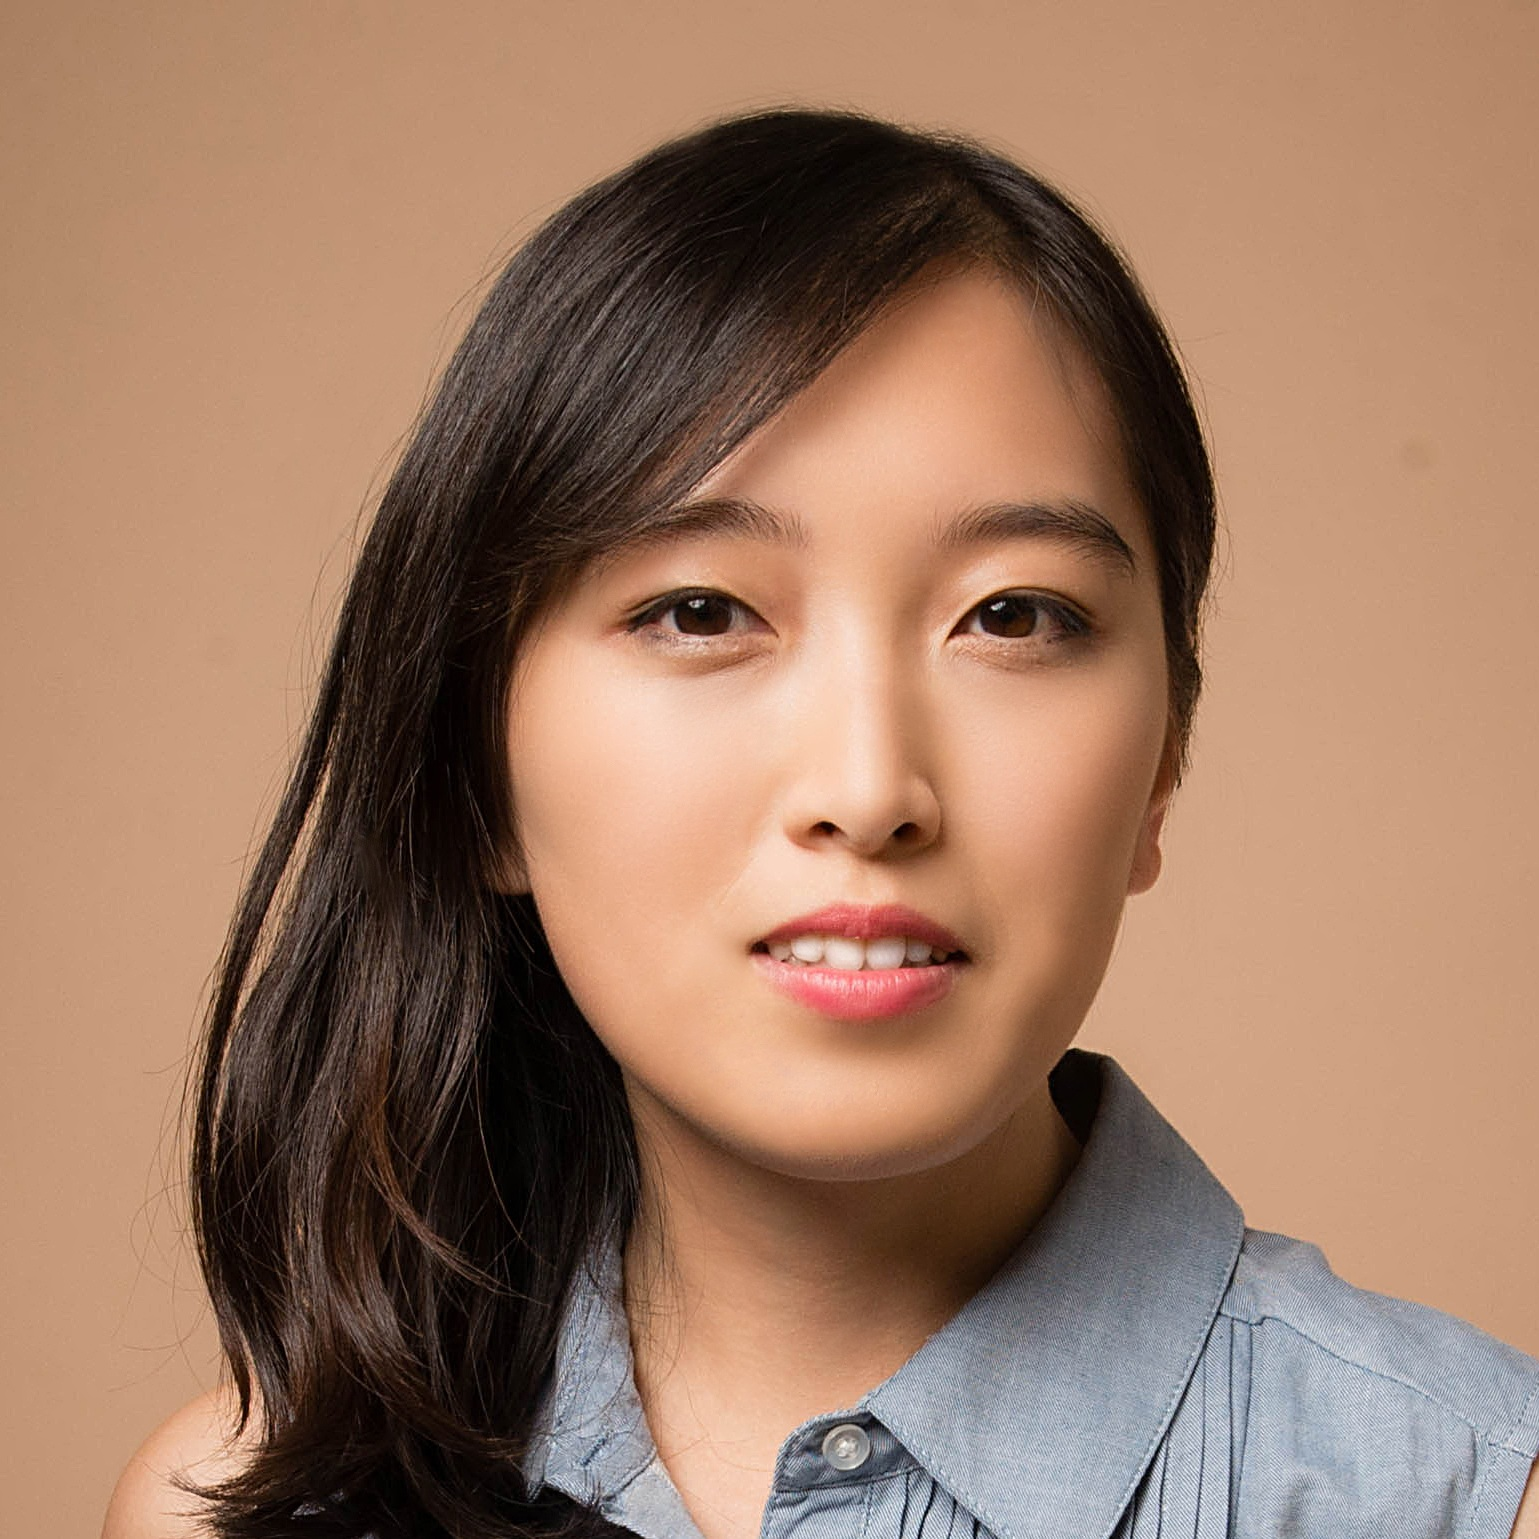 Eileen Shim  ('17) was promoted to Executive Story Editor for the second season of Hulu's LIGHT AS A FEATHER. She is also actively developing feature film projects.